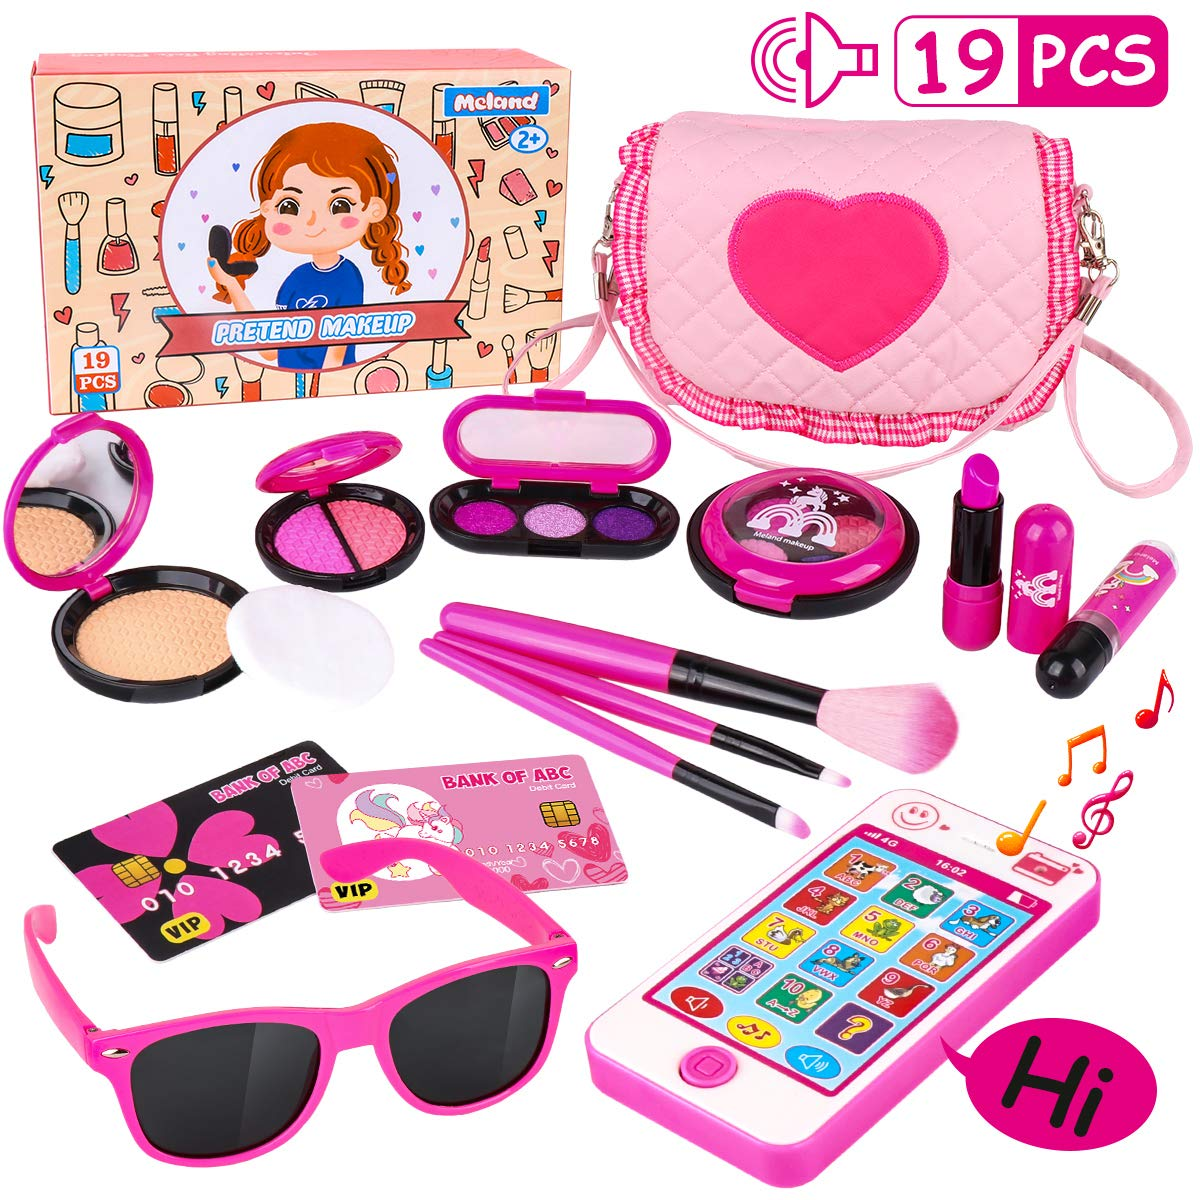 Kids Makeup Kit - Girl Pretend Play Makeup & My First Purse Toy for Toddler Gifts Including Pink Princess Purse, Smartphone, Sunglasses, Credit Card, Lipstick, Brush, Lights Up & Make Real Life Sounds by Meland